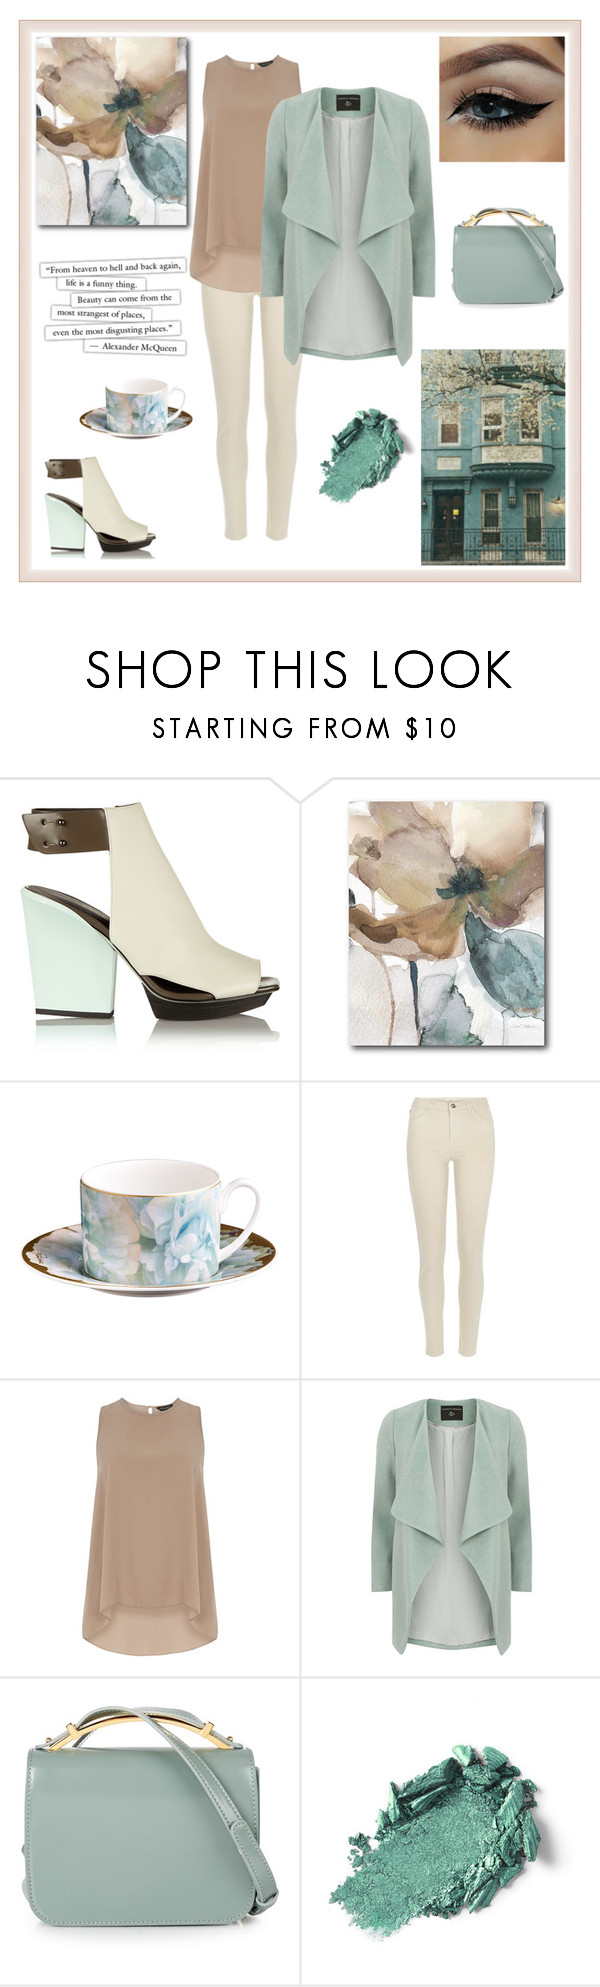 """""""Untitled #242"""" by non-mi-piace ❤ liked on Polyvore featuring 3.1 Phillip Lim, Courtside Market, Roberto Cavalli, River Island, Dorothy Perkins and Marni"""